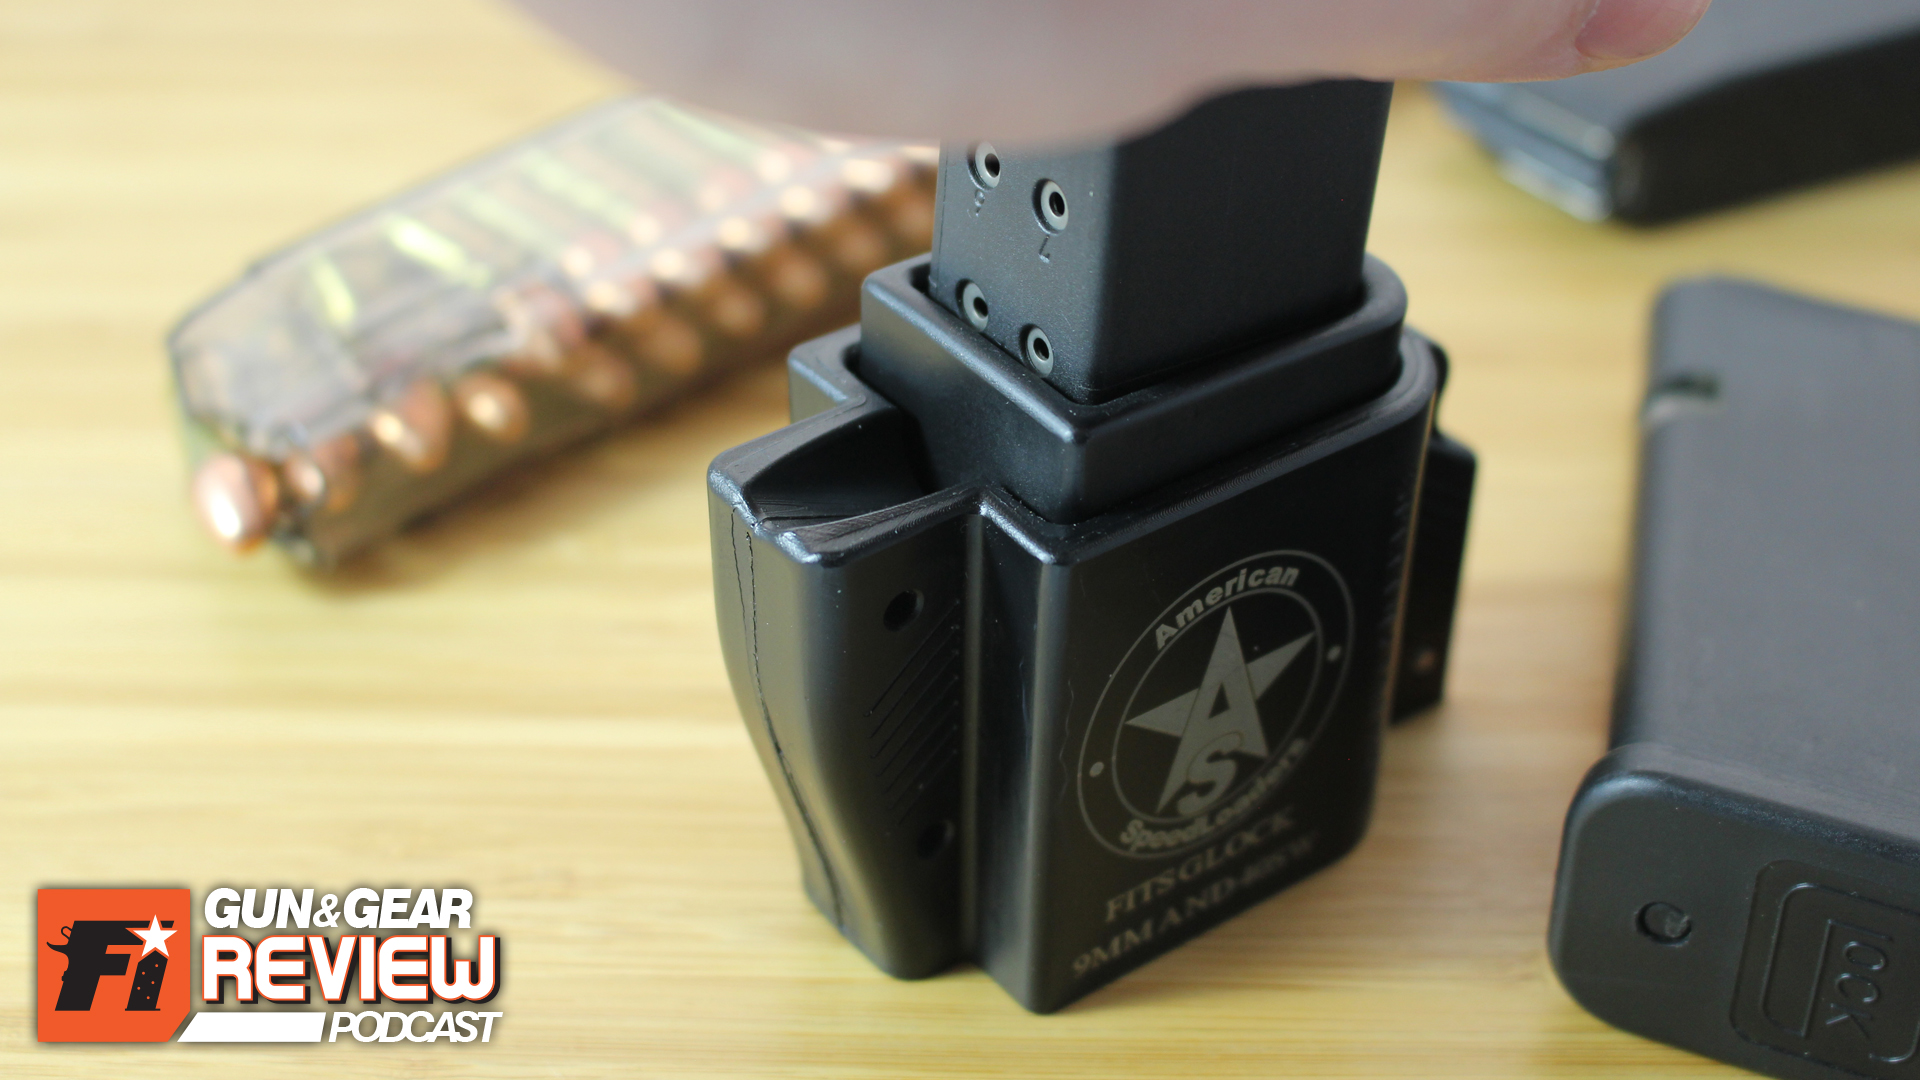 Pushing down picks up the round in the magazine. It doesn't require much force, even with the compressed spring of high capacity mags.